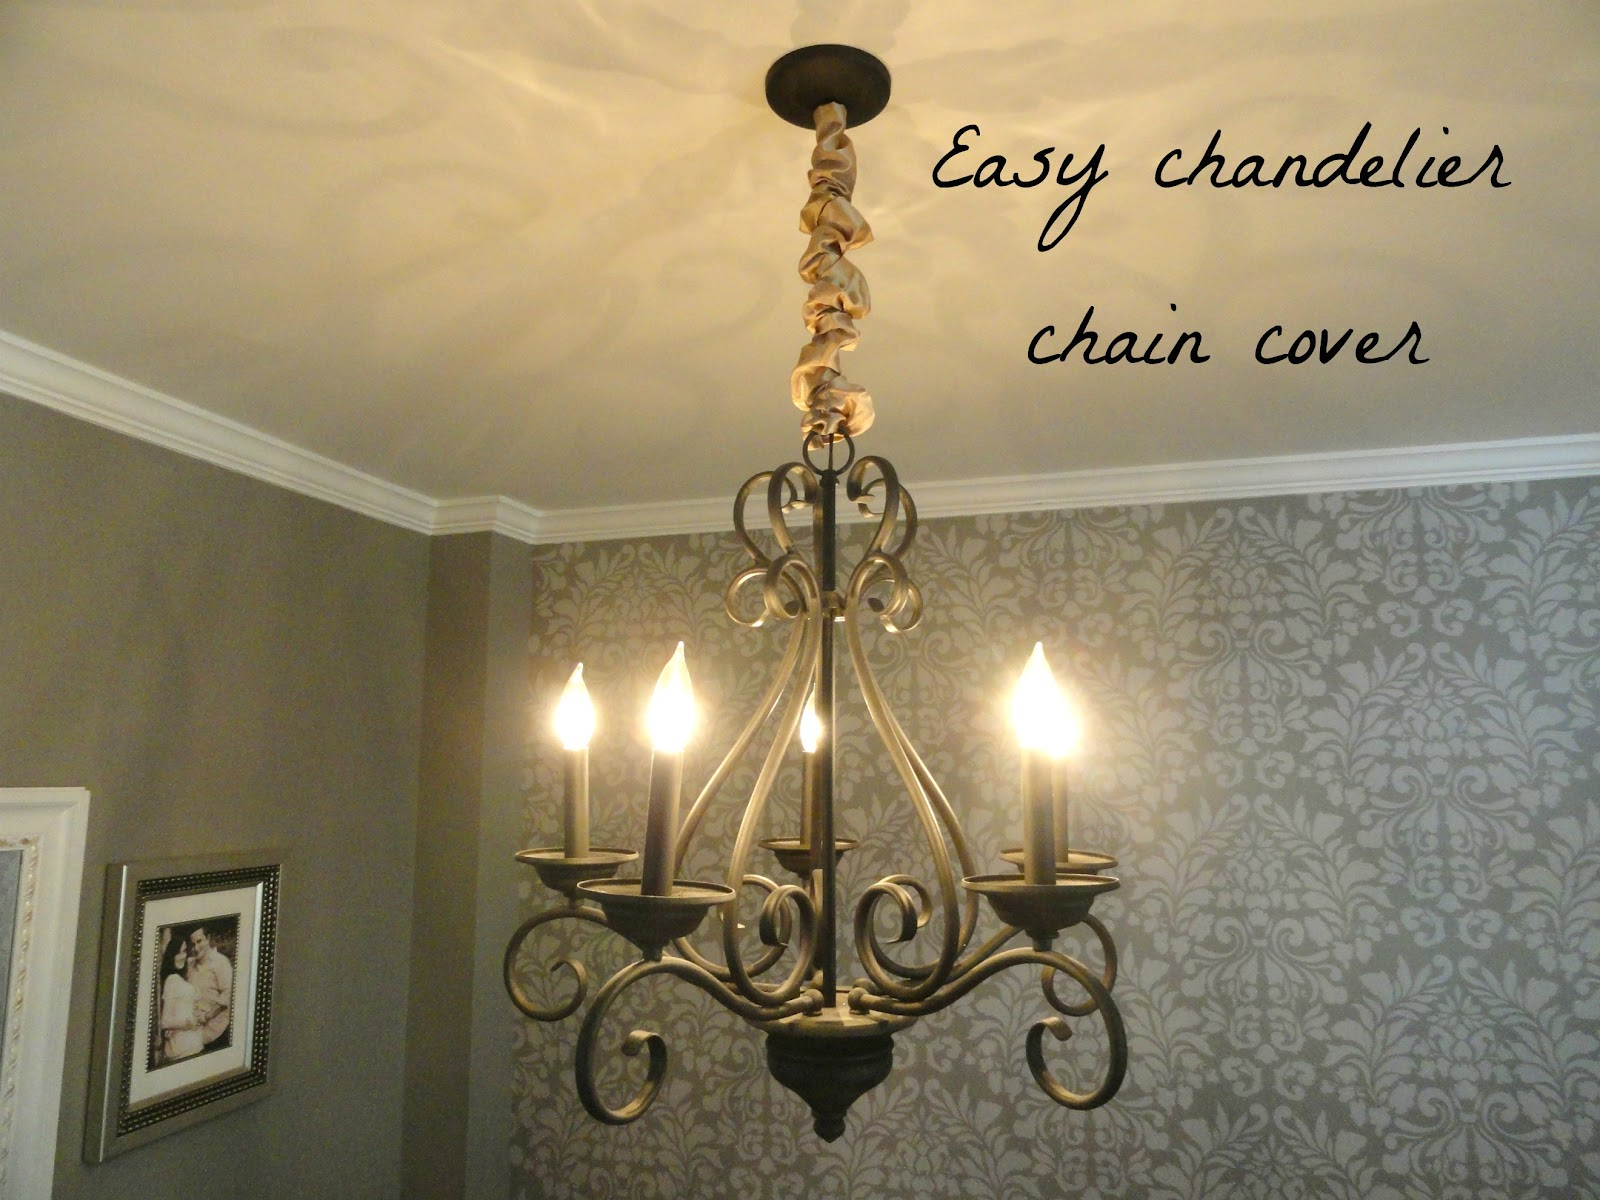 I Can T Say That Had Even Thought Much About Covering The Chandelier Chain Before But Day It Seemed Like A Great Idea This Is Really Easy